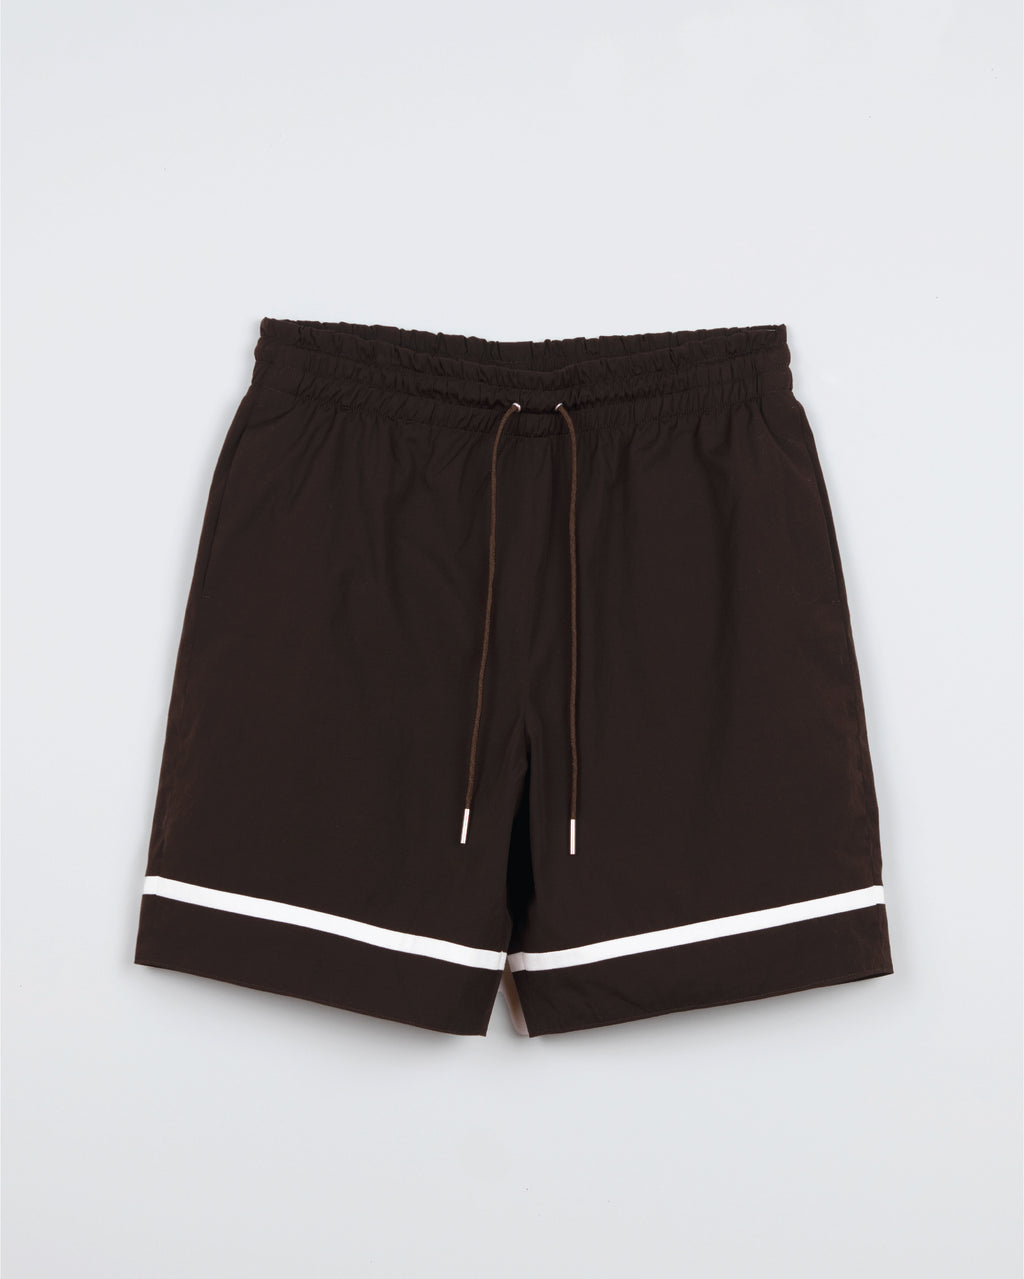 Brown Basketball Shorts